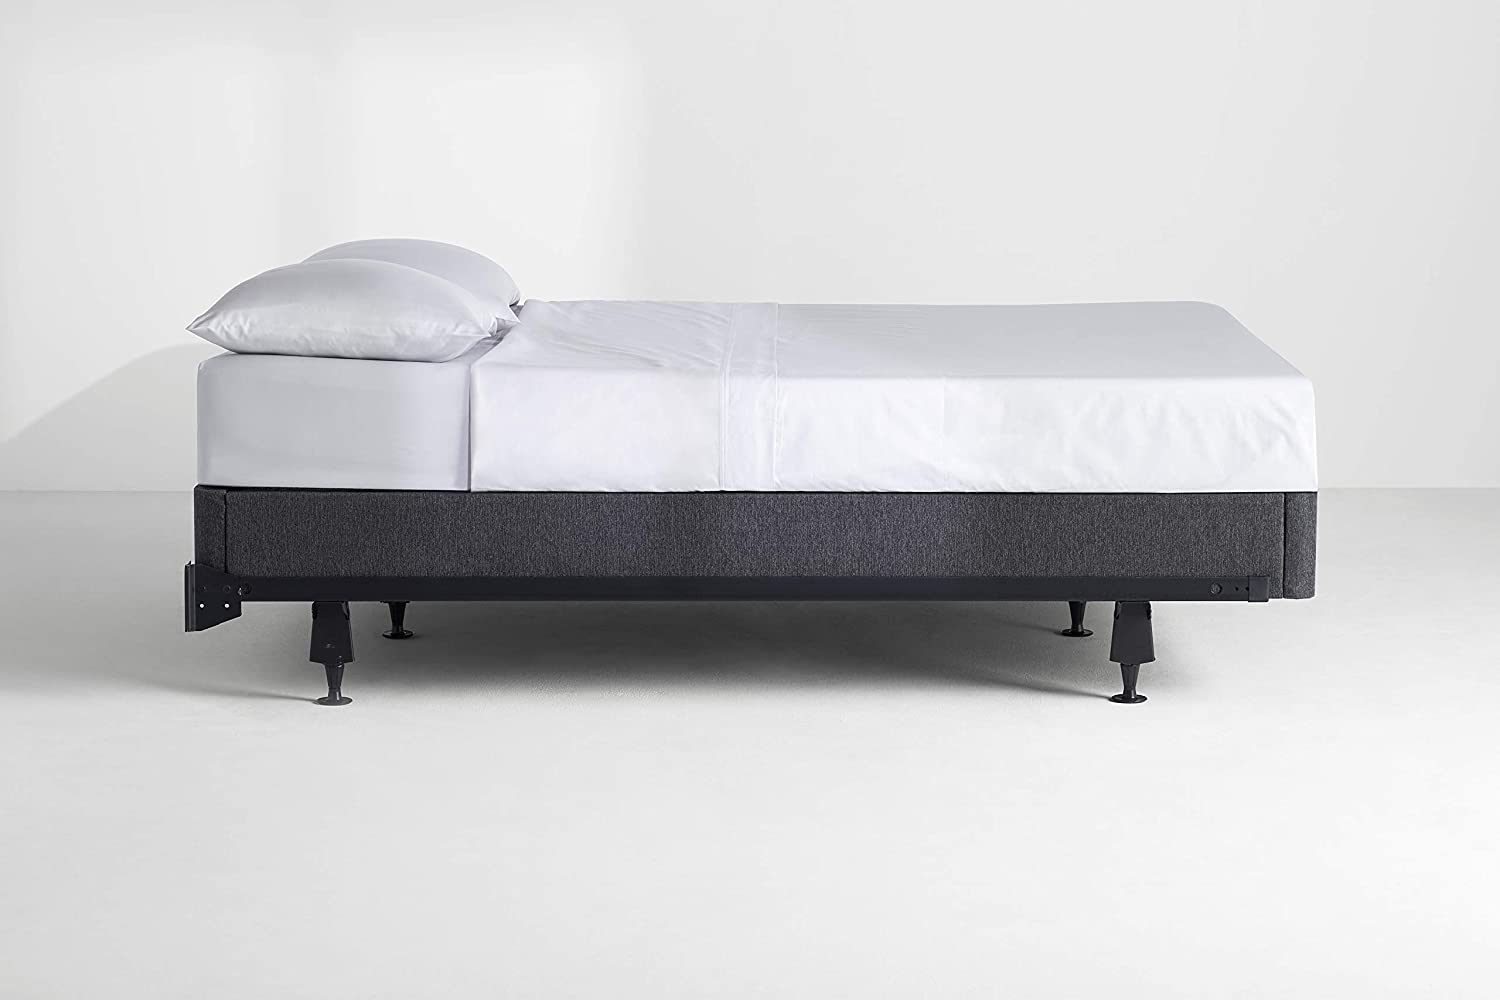 Casper Sleep - Foundation/Box Spring - Compact and Easy to Assemble (Queen)